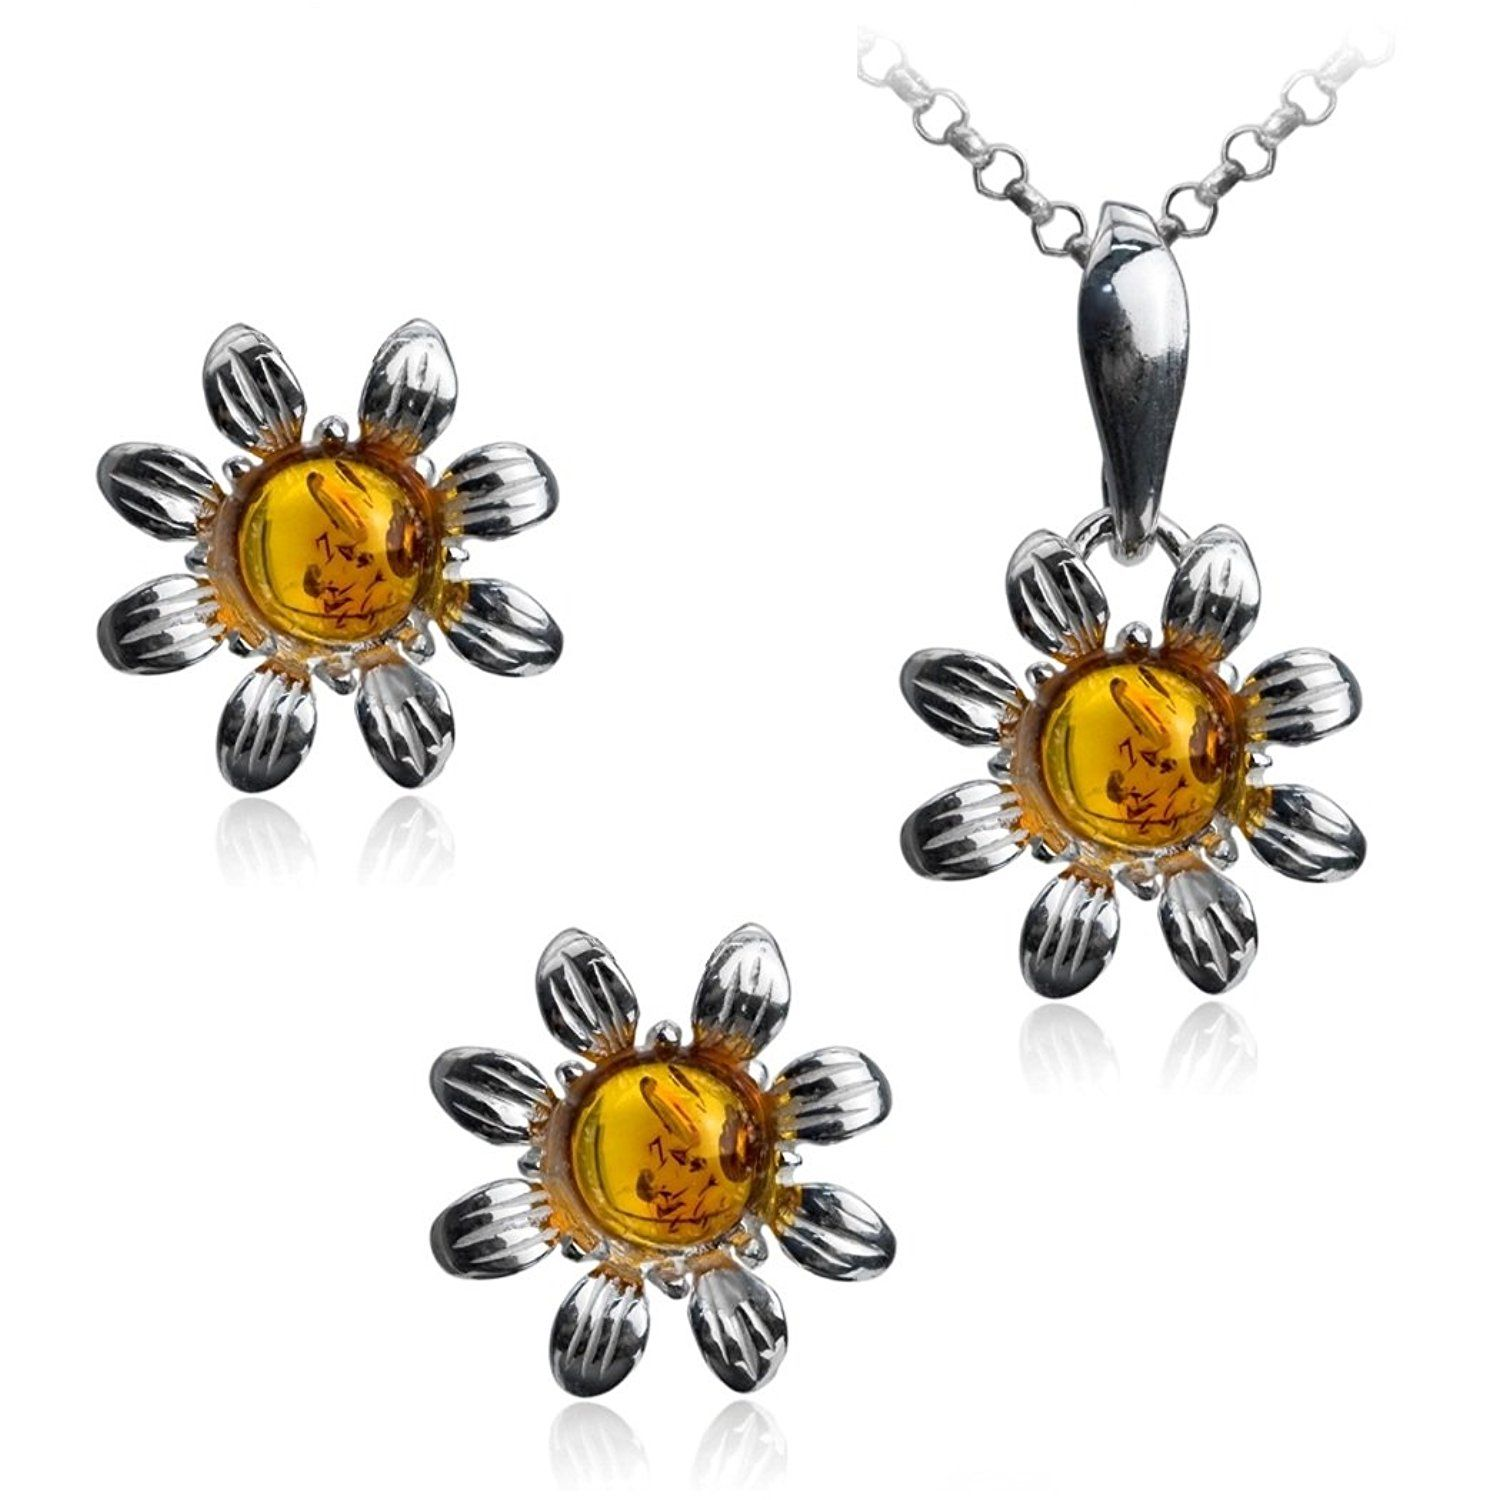 Amber sterling silver round flowers stud earrings pendant set chain